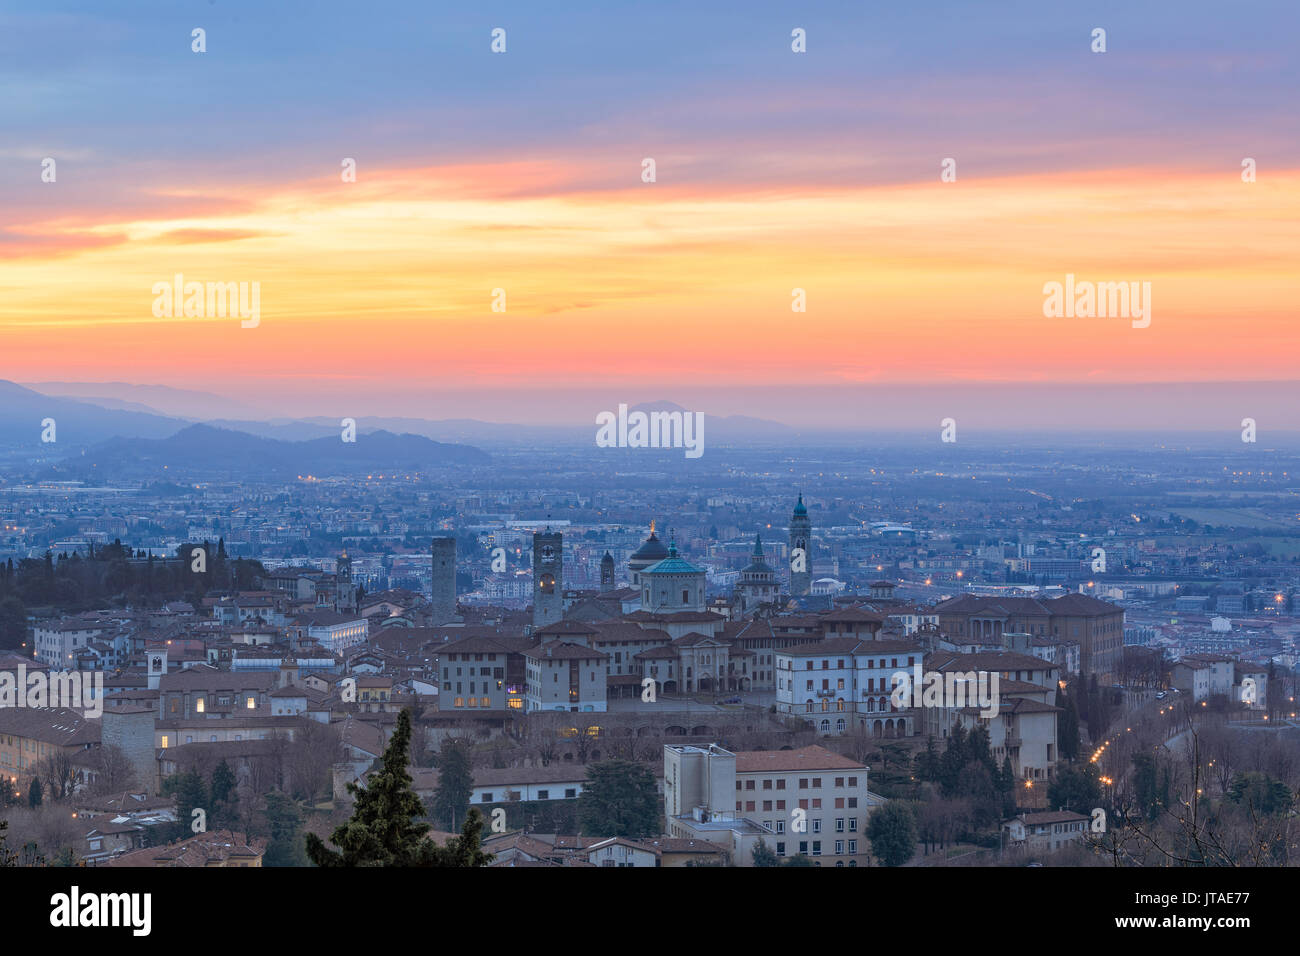 View of the medieval old town called Citta Alta on hilltop framed by the fiery orange sky at dawn, Bergamo, Lombardy, Italy - Stock Image